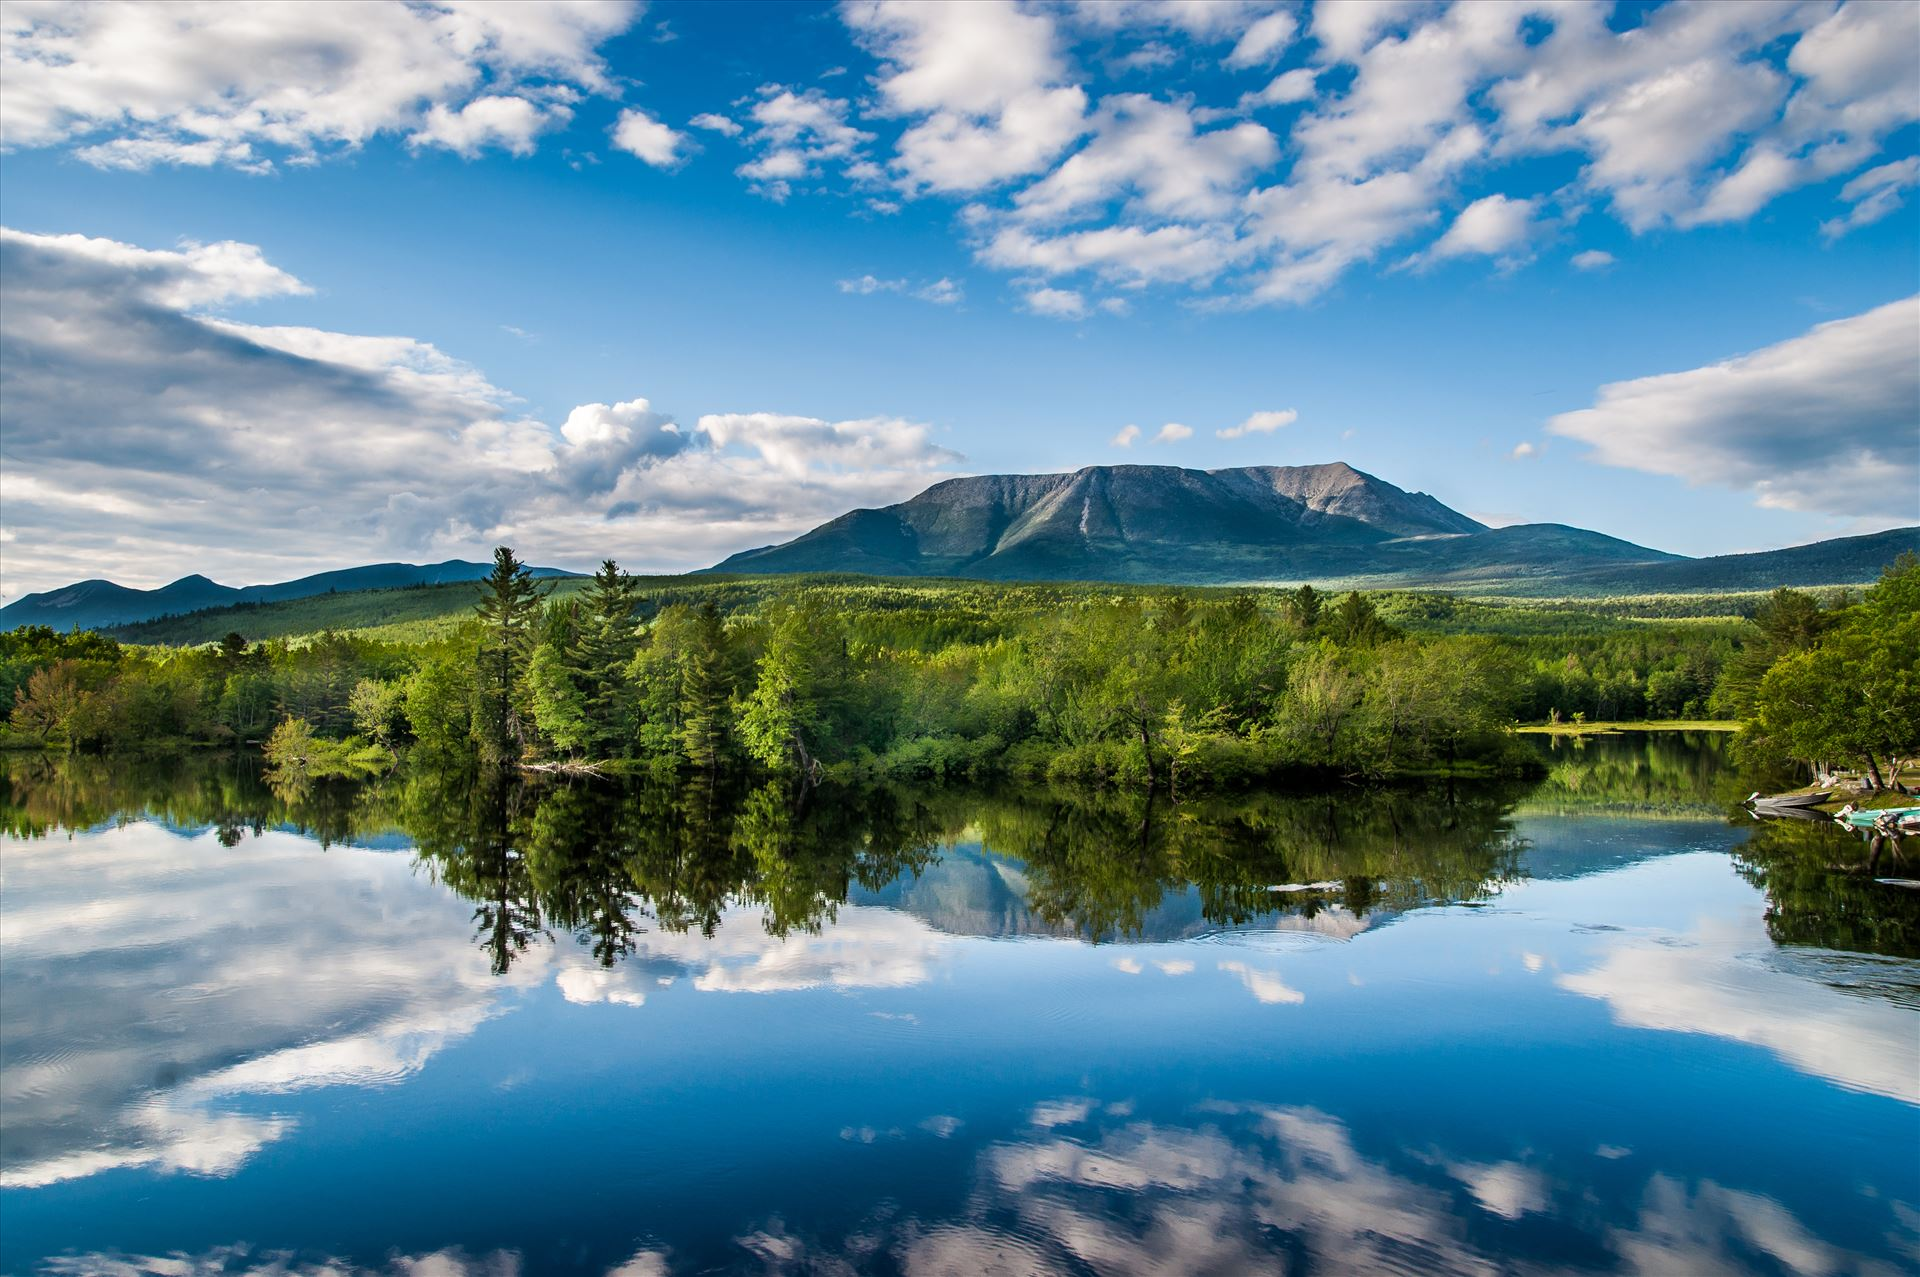 Mount Katahdin,Maine - Photograph of Mount Katahdin, Maine from Abol Bridge,which crosses the West Branch Penobscot River by Buckmaster